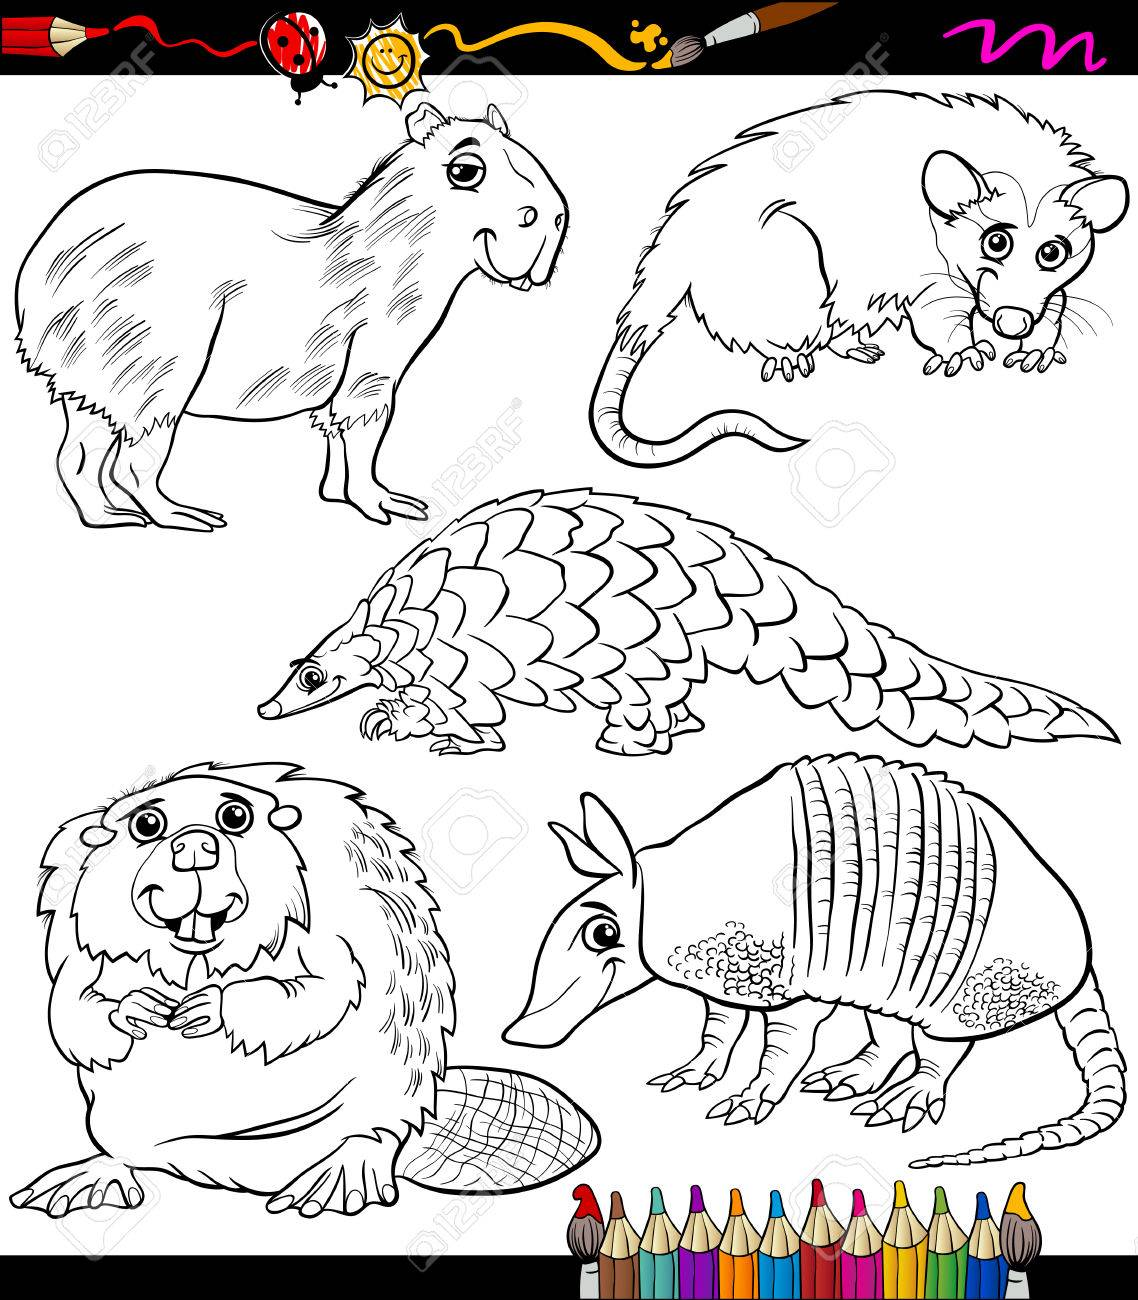 coloring book or page cartoon illustration of black and white